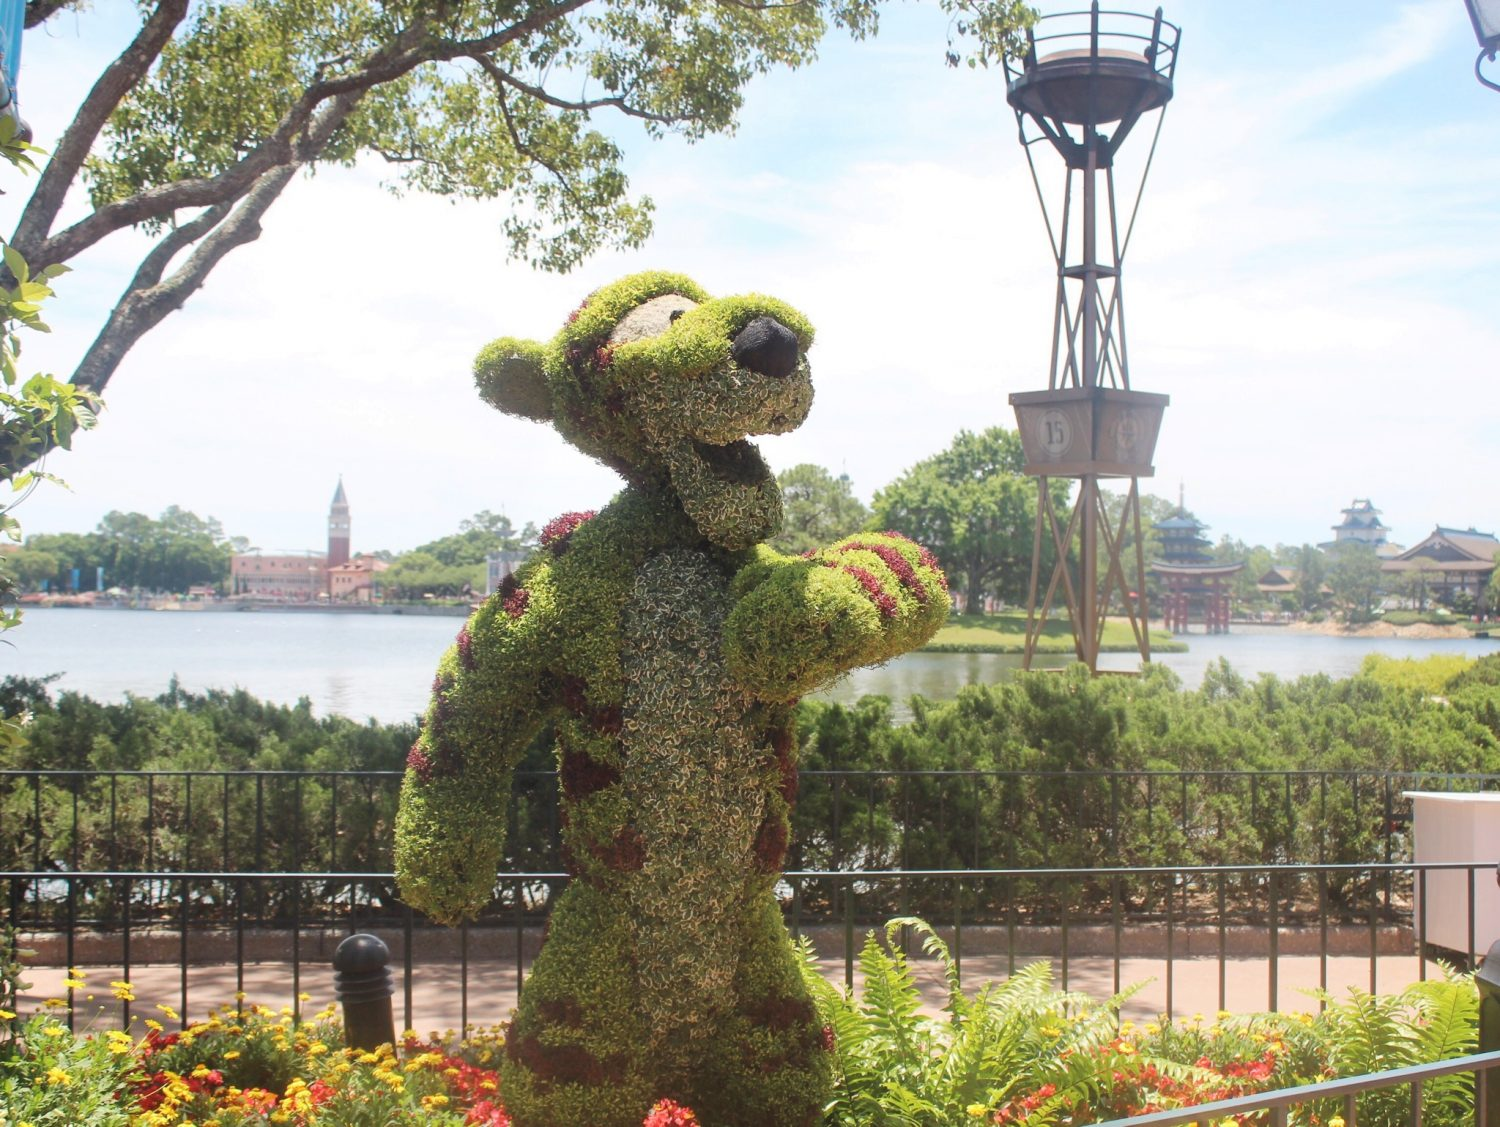 Epcot International Flower and Garden Festival Tigger